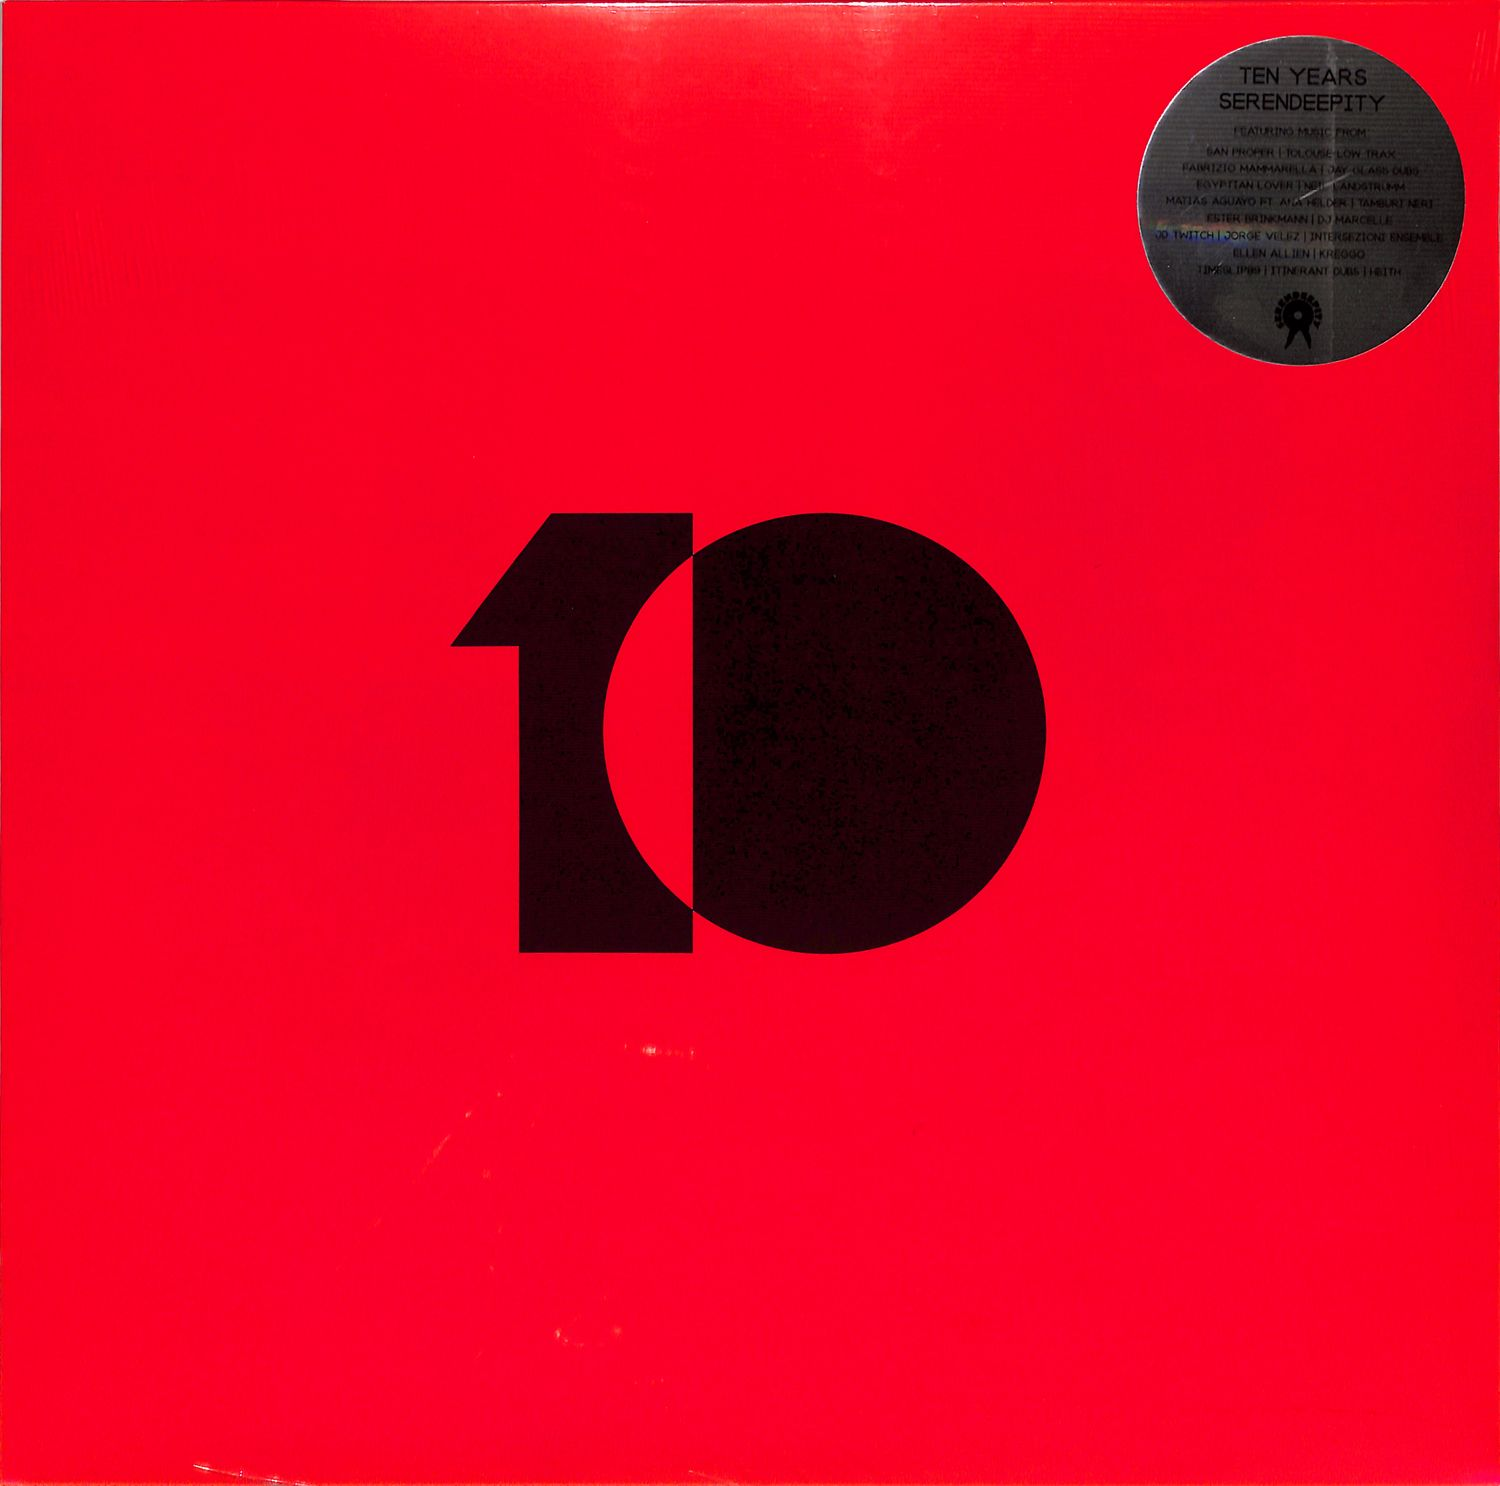 San Proper Tolouse Low Trax F Mammare - 10 YEARS SERENDEEPITY PT1